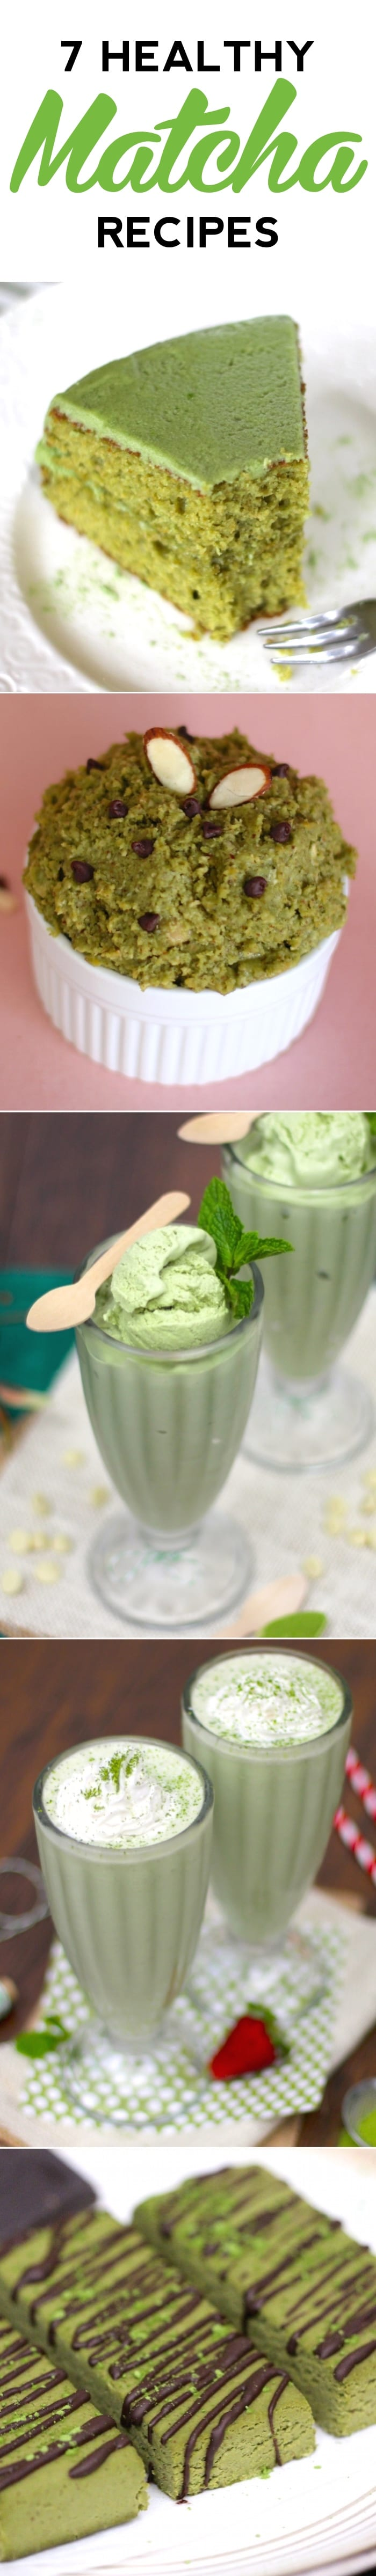 Healthy Matcha Green Tea Recipes (sugar free, gluten free, high protein) - Desserts with Benefits